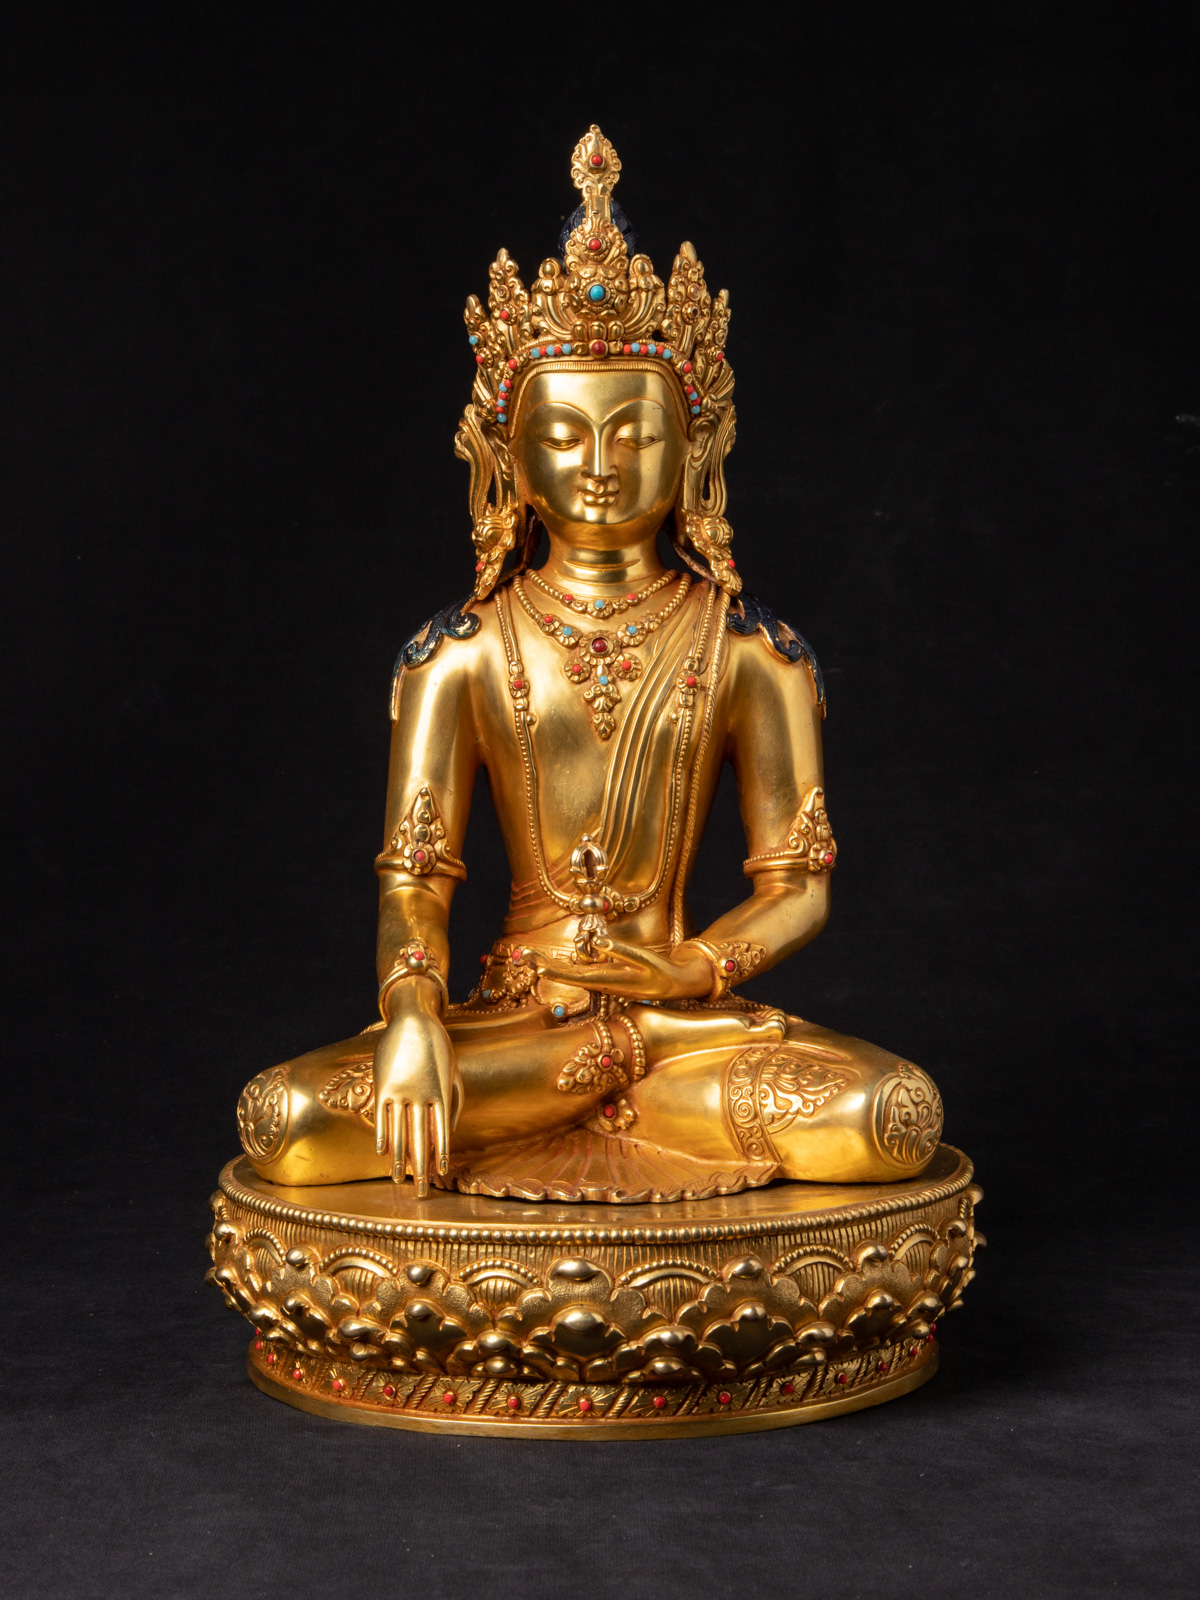 Large Nepali crowned Buddha statue from Nepal made from Bronze